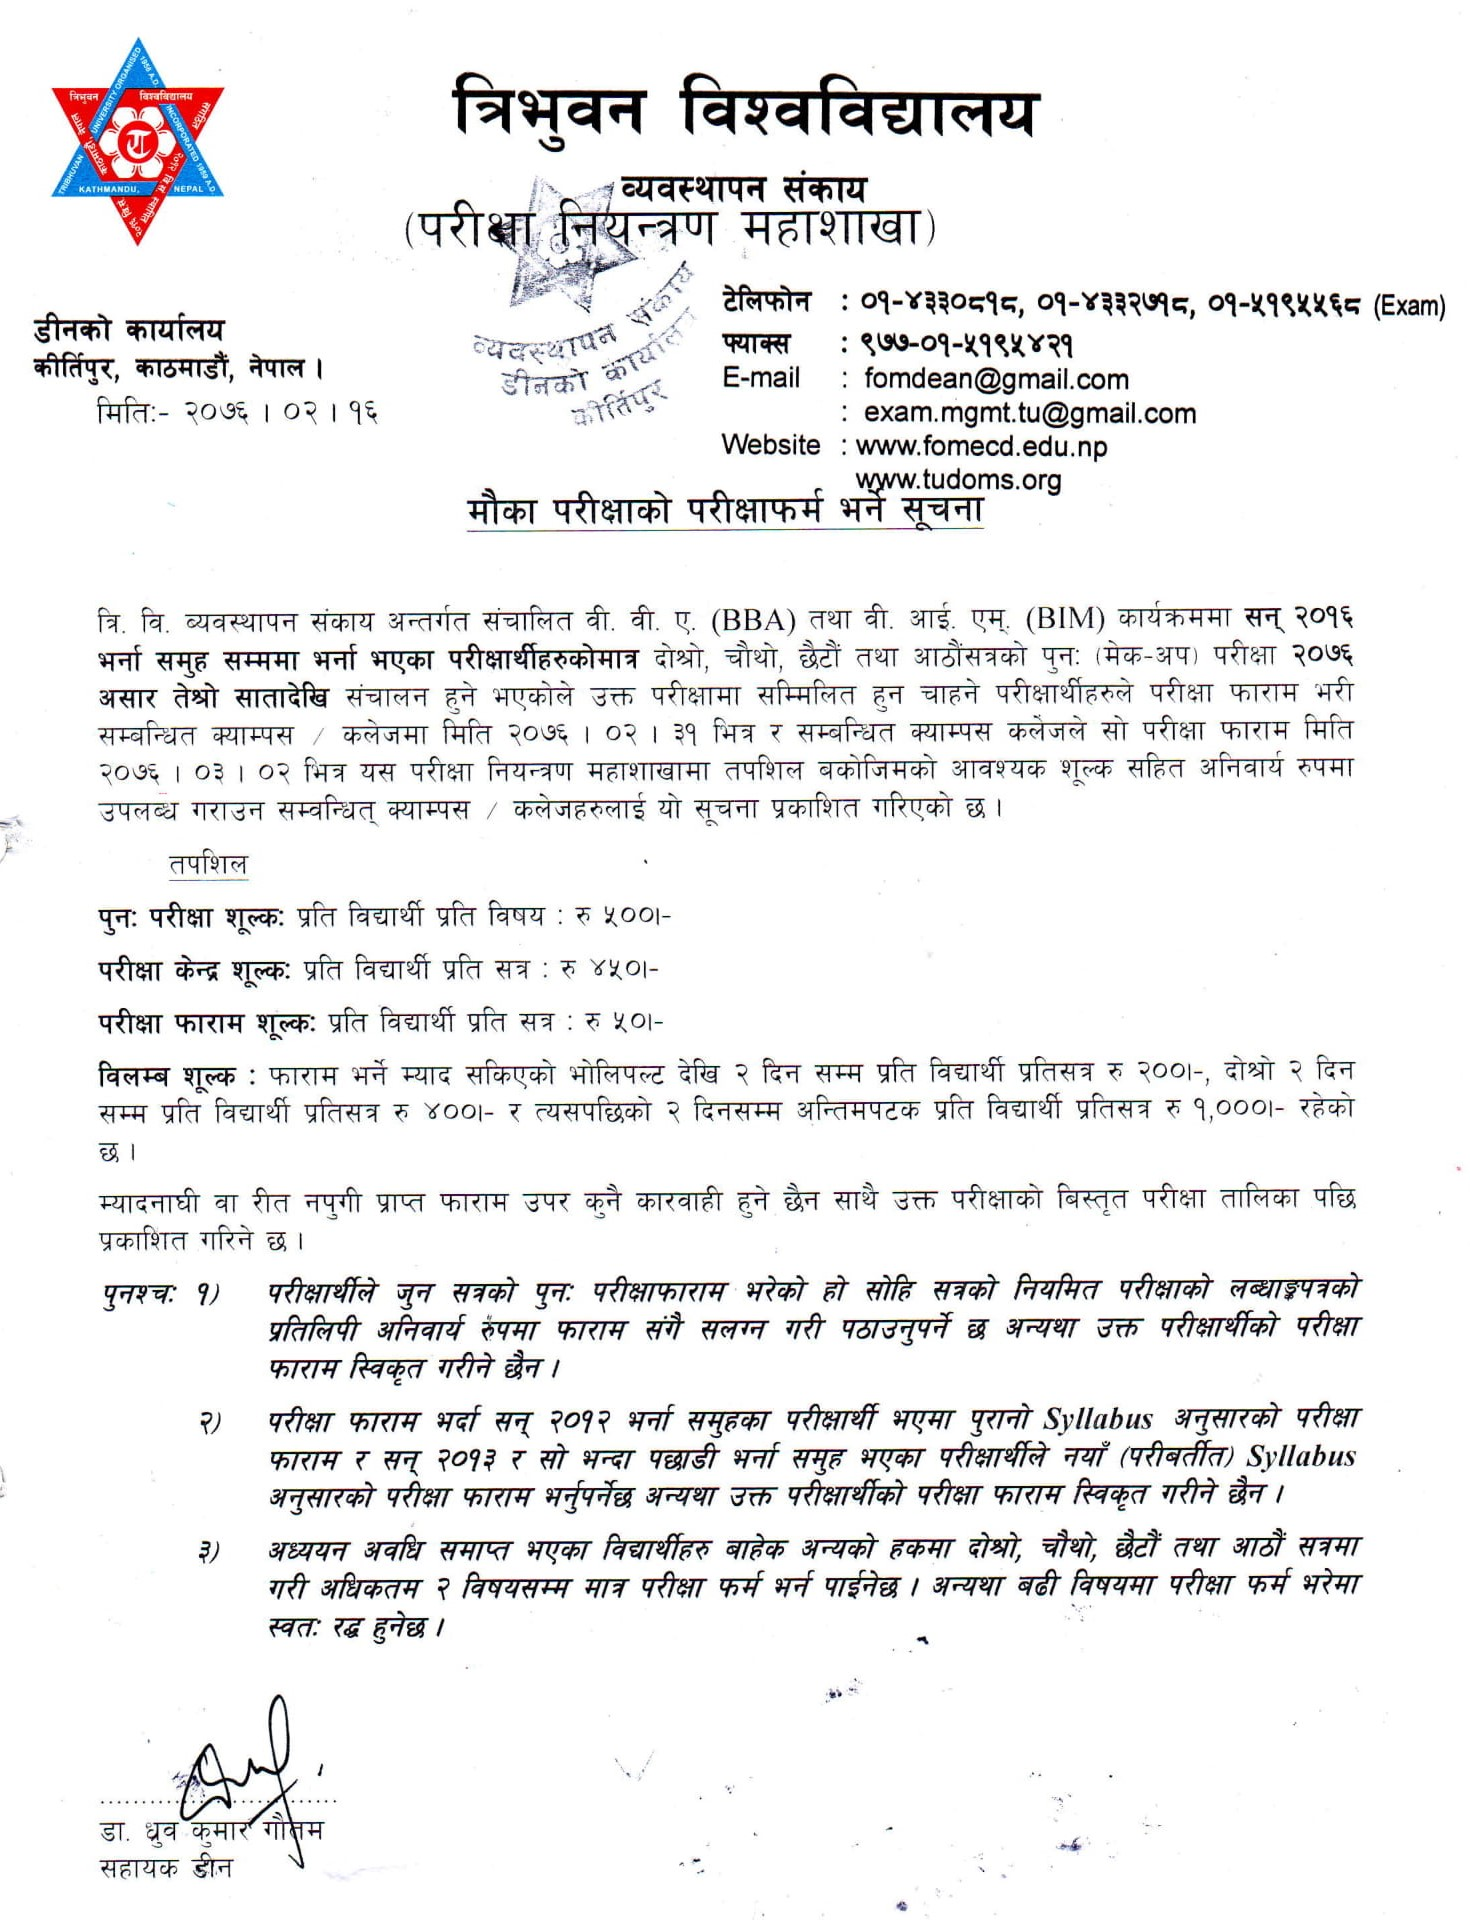 Make Up Exam Notice For BBA and BIM